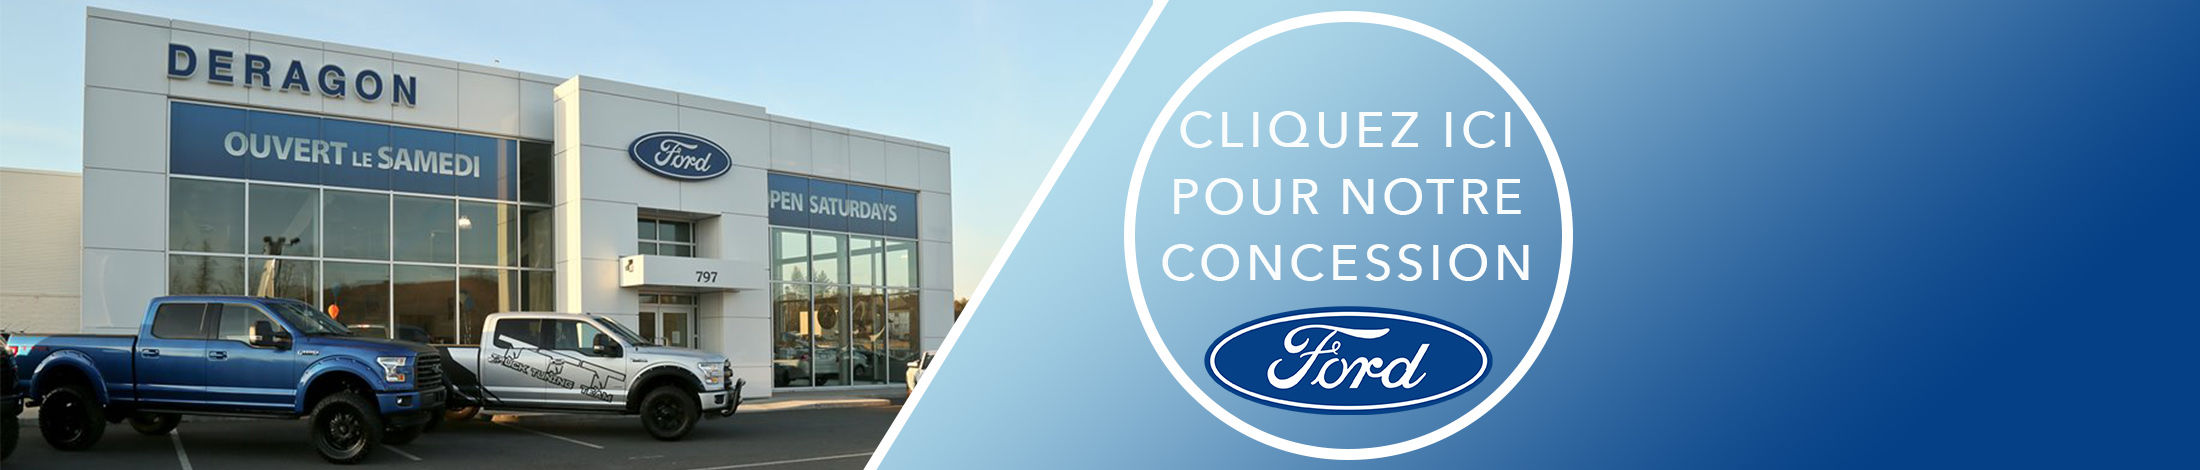 Notre concession Ford